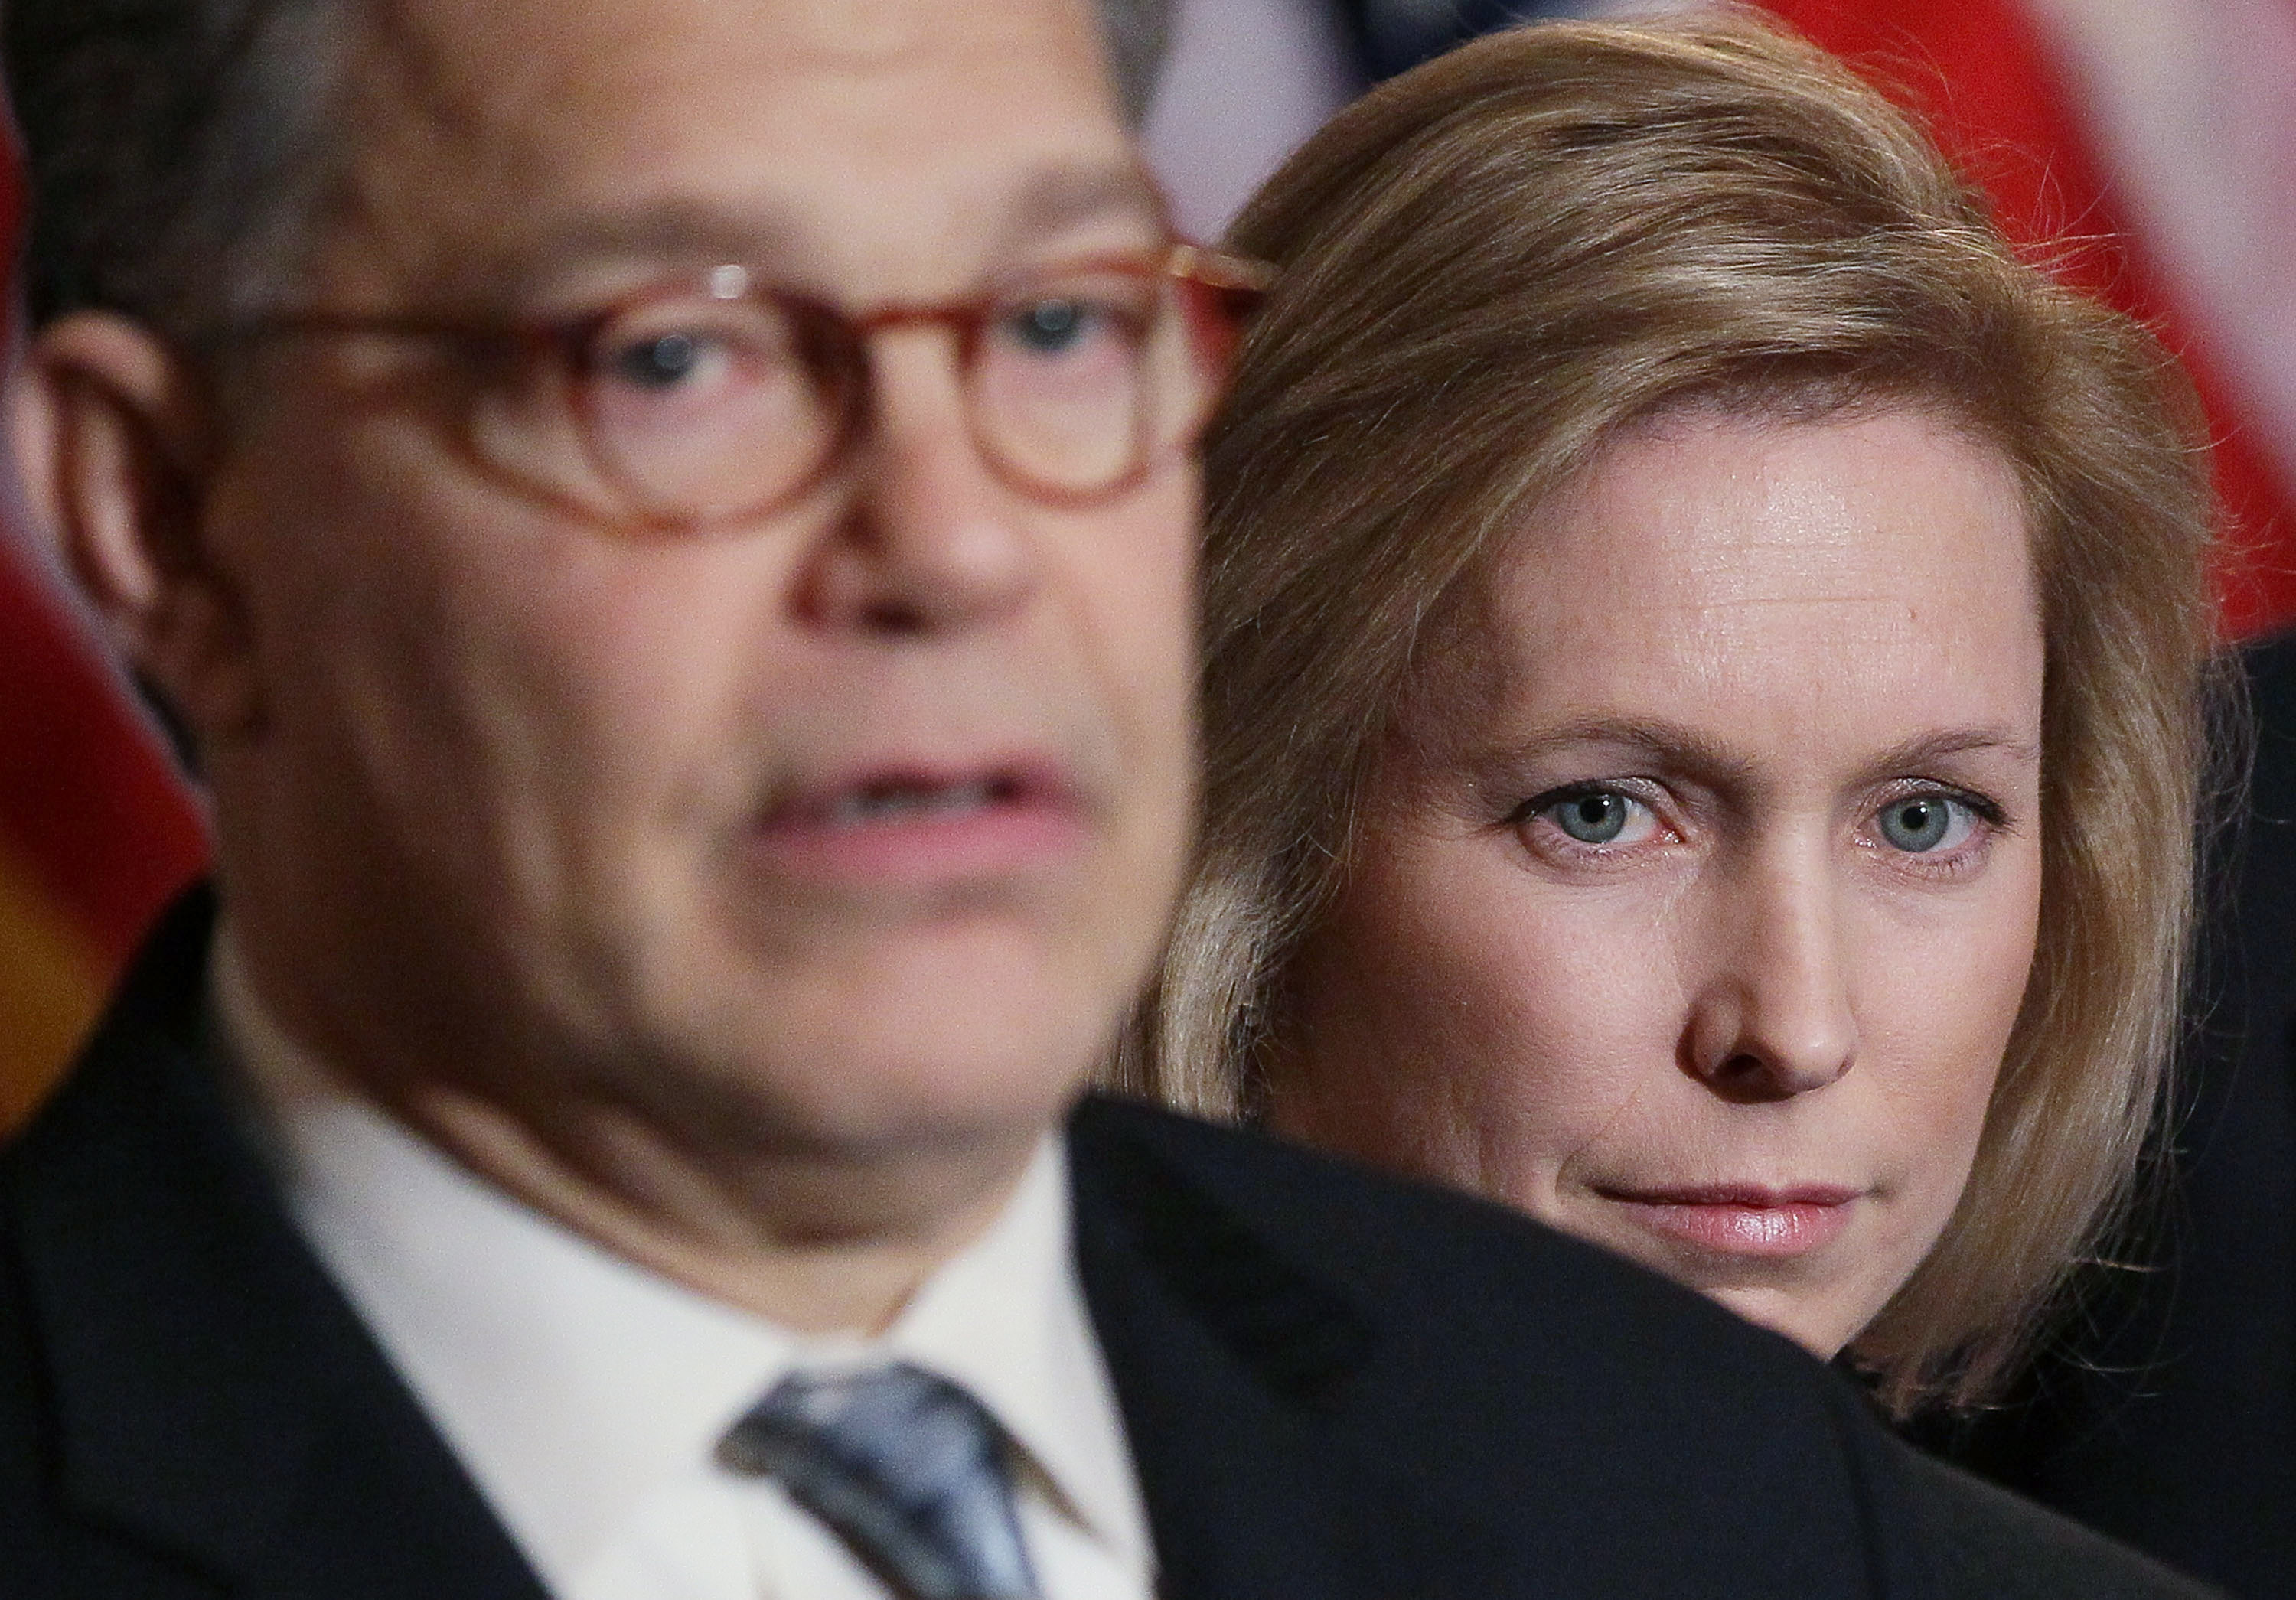 U.S. Sen. Kristen Gillibrand (D-NY) (R), and U.S. Sen. Al Franken (D-MN), participatie in a news conference to discuss women's health issues at the U.S. Capitol on February 8, 2011 in Washington, DC. (Photo by Mark Wilson/Getty Images)